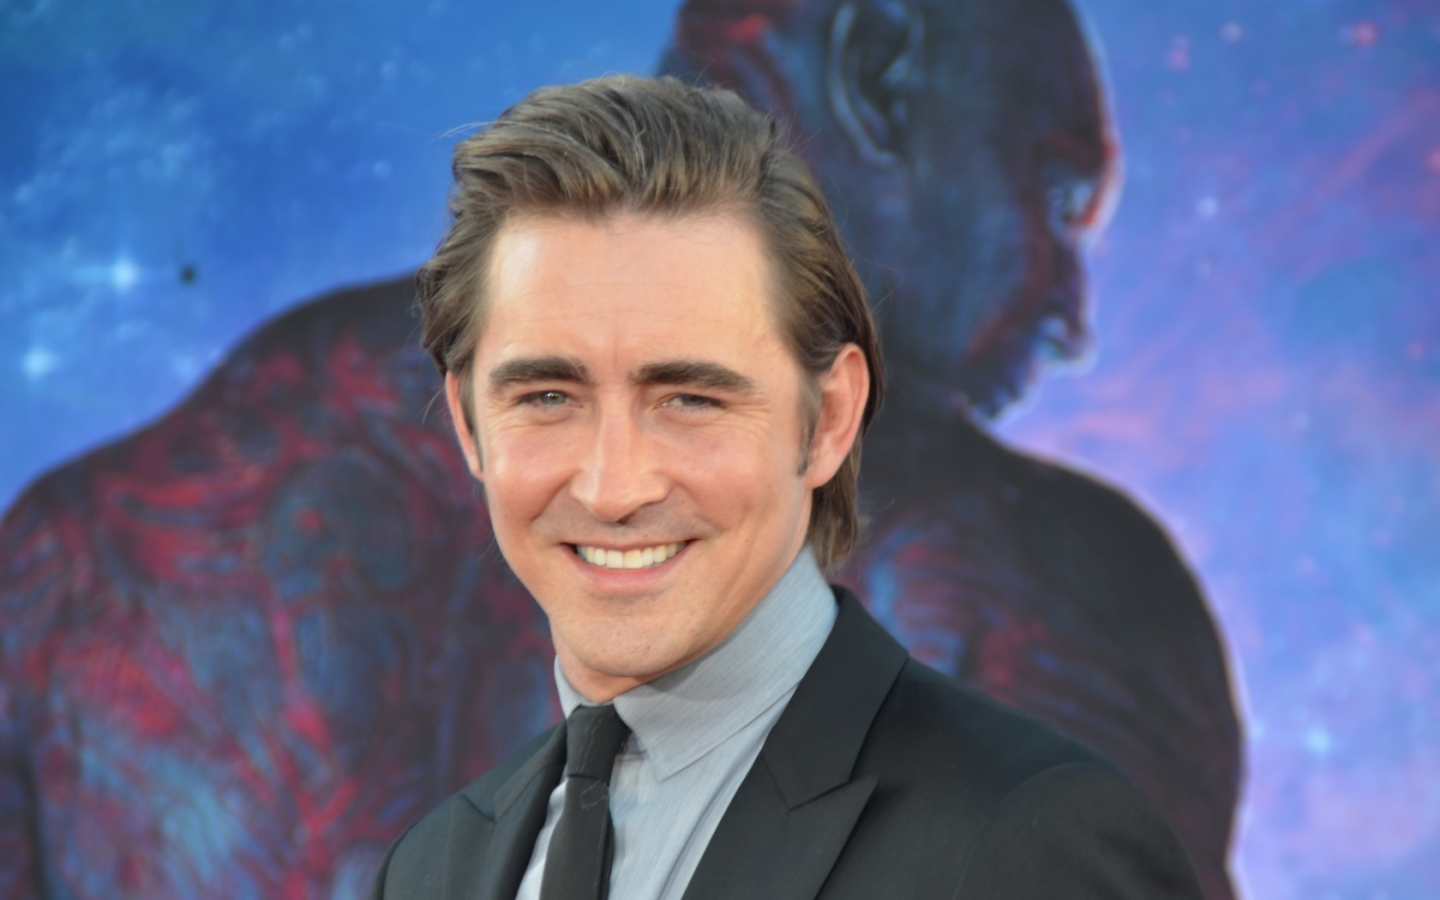 Lee Pace Actor for 1440 x 900 widescreen resolution